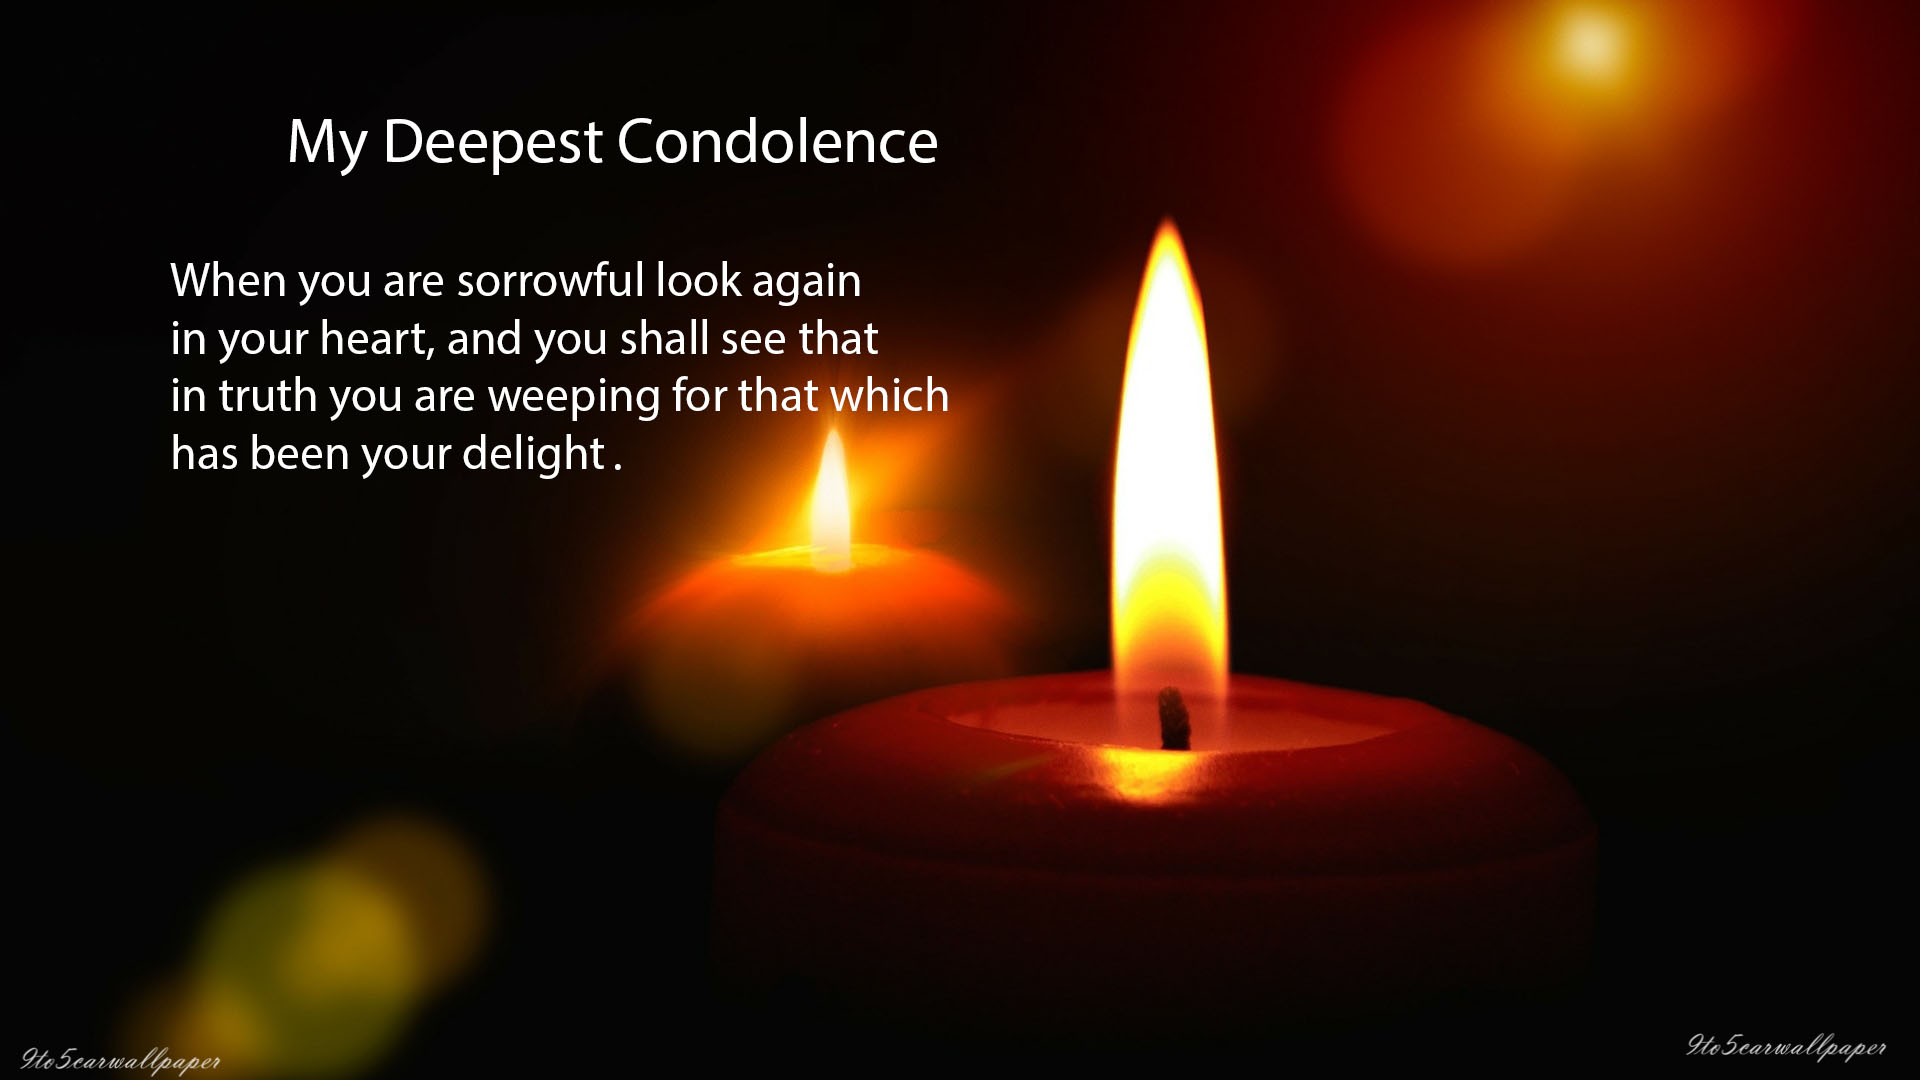 Condolence Sad Quotes Images and Wallpapers - My Site